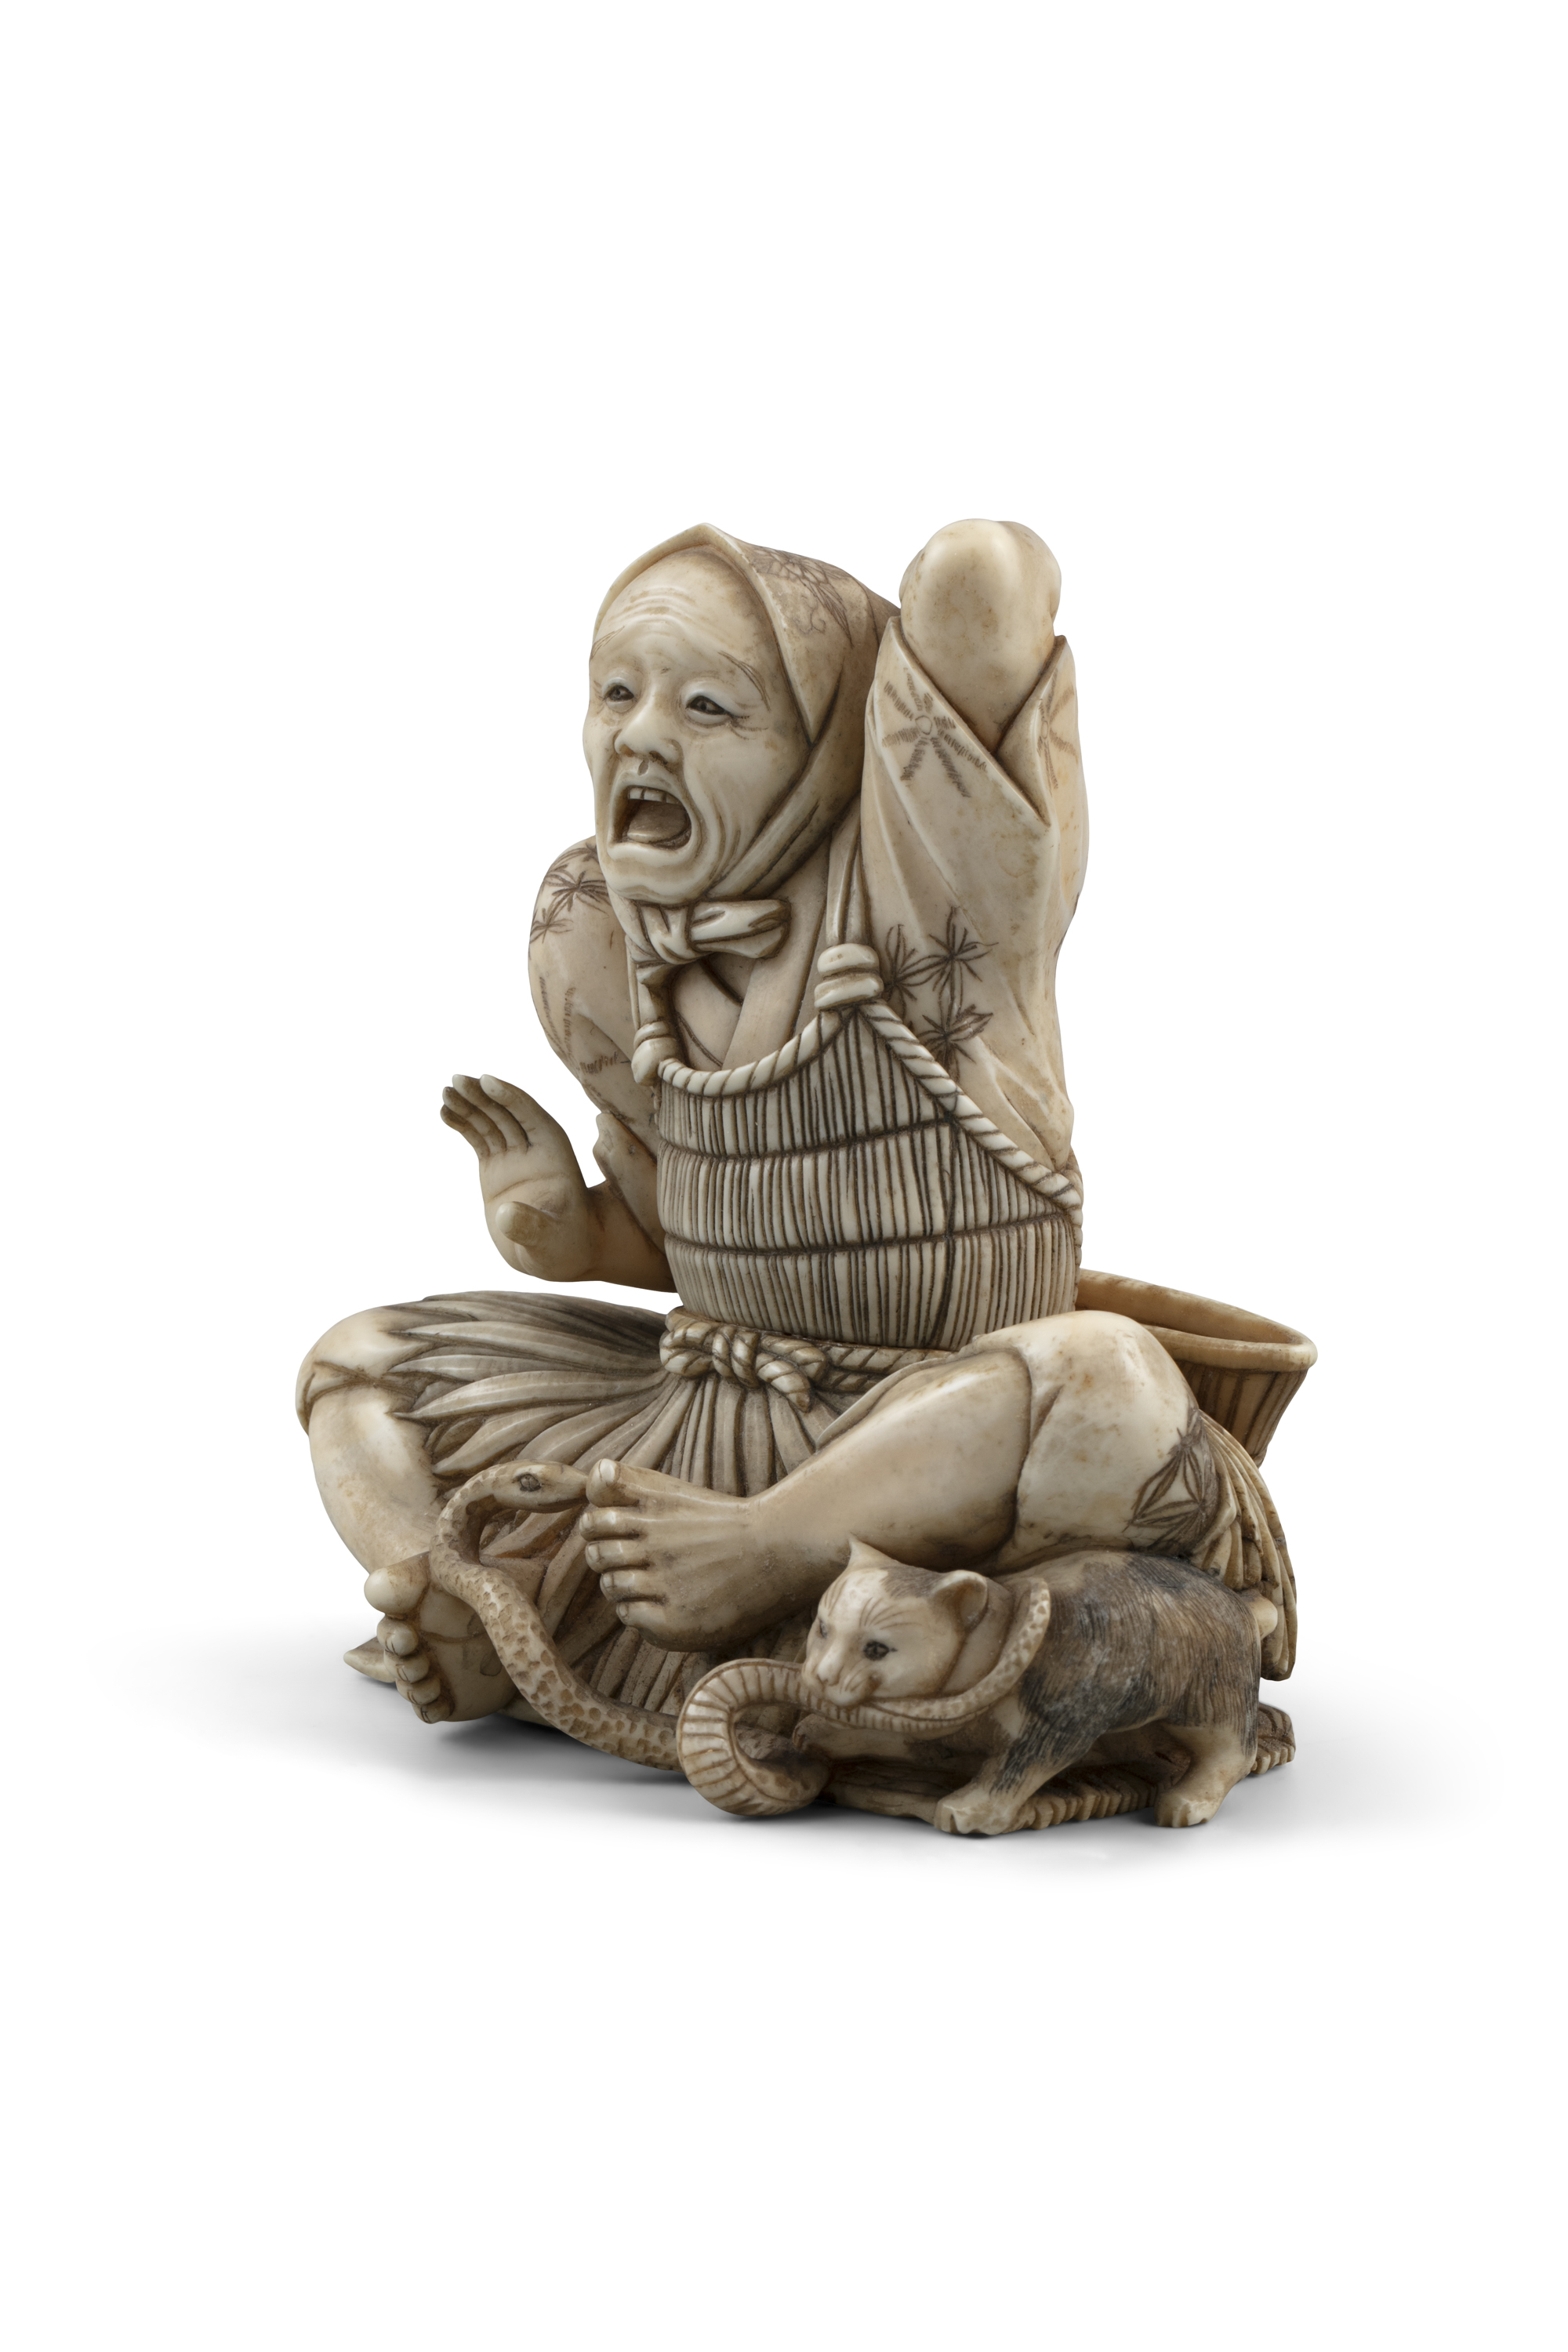 *MASAHIDE 正秀: A CARVED IVORY OKIMONO OF SCARED MAN WITH A CAT AND A SNAKE Japan, Meiji period, - Image 4 of 14